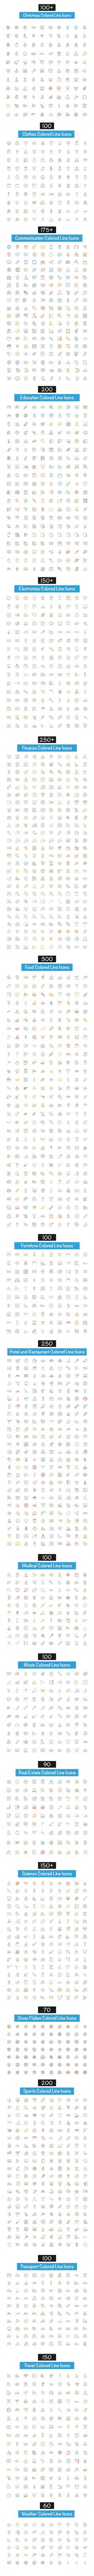 2600+ Colored Line Icons - 30% off this week!